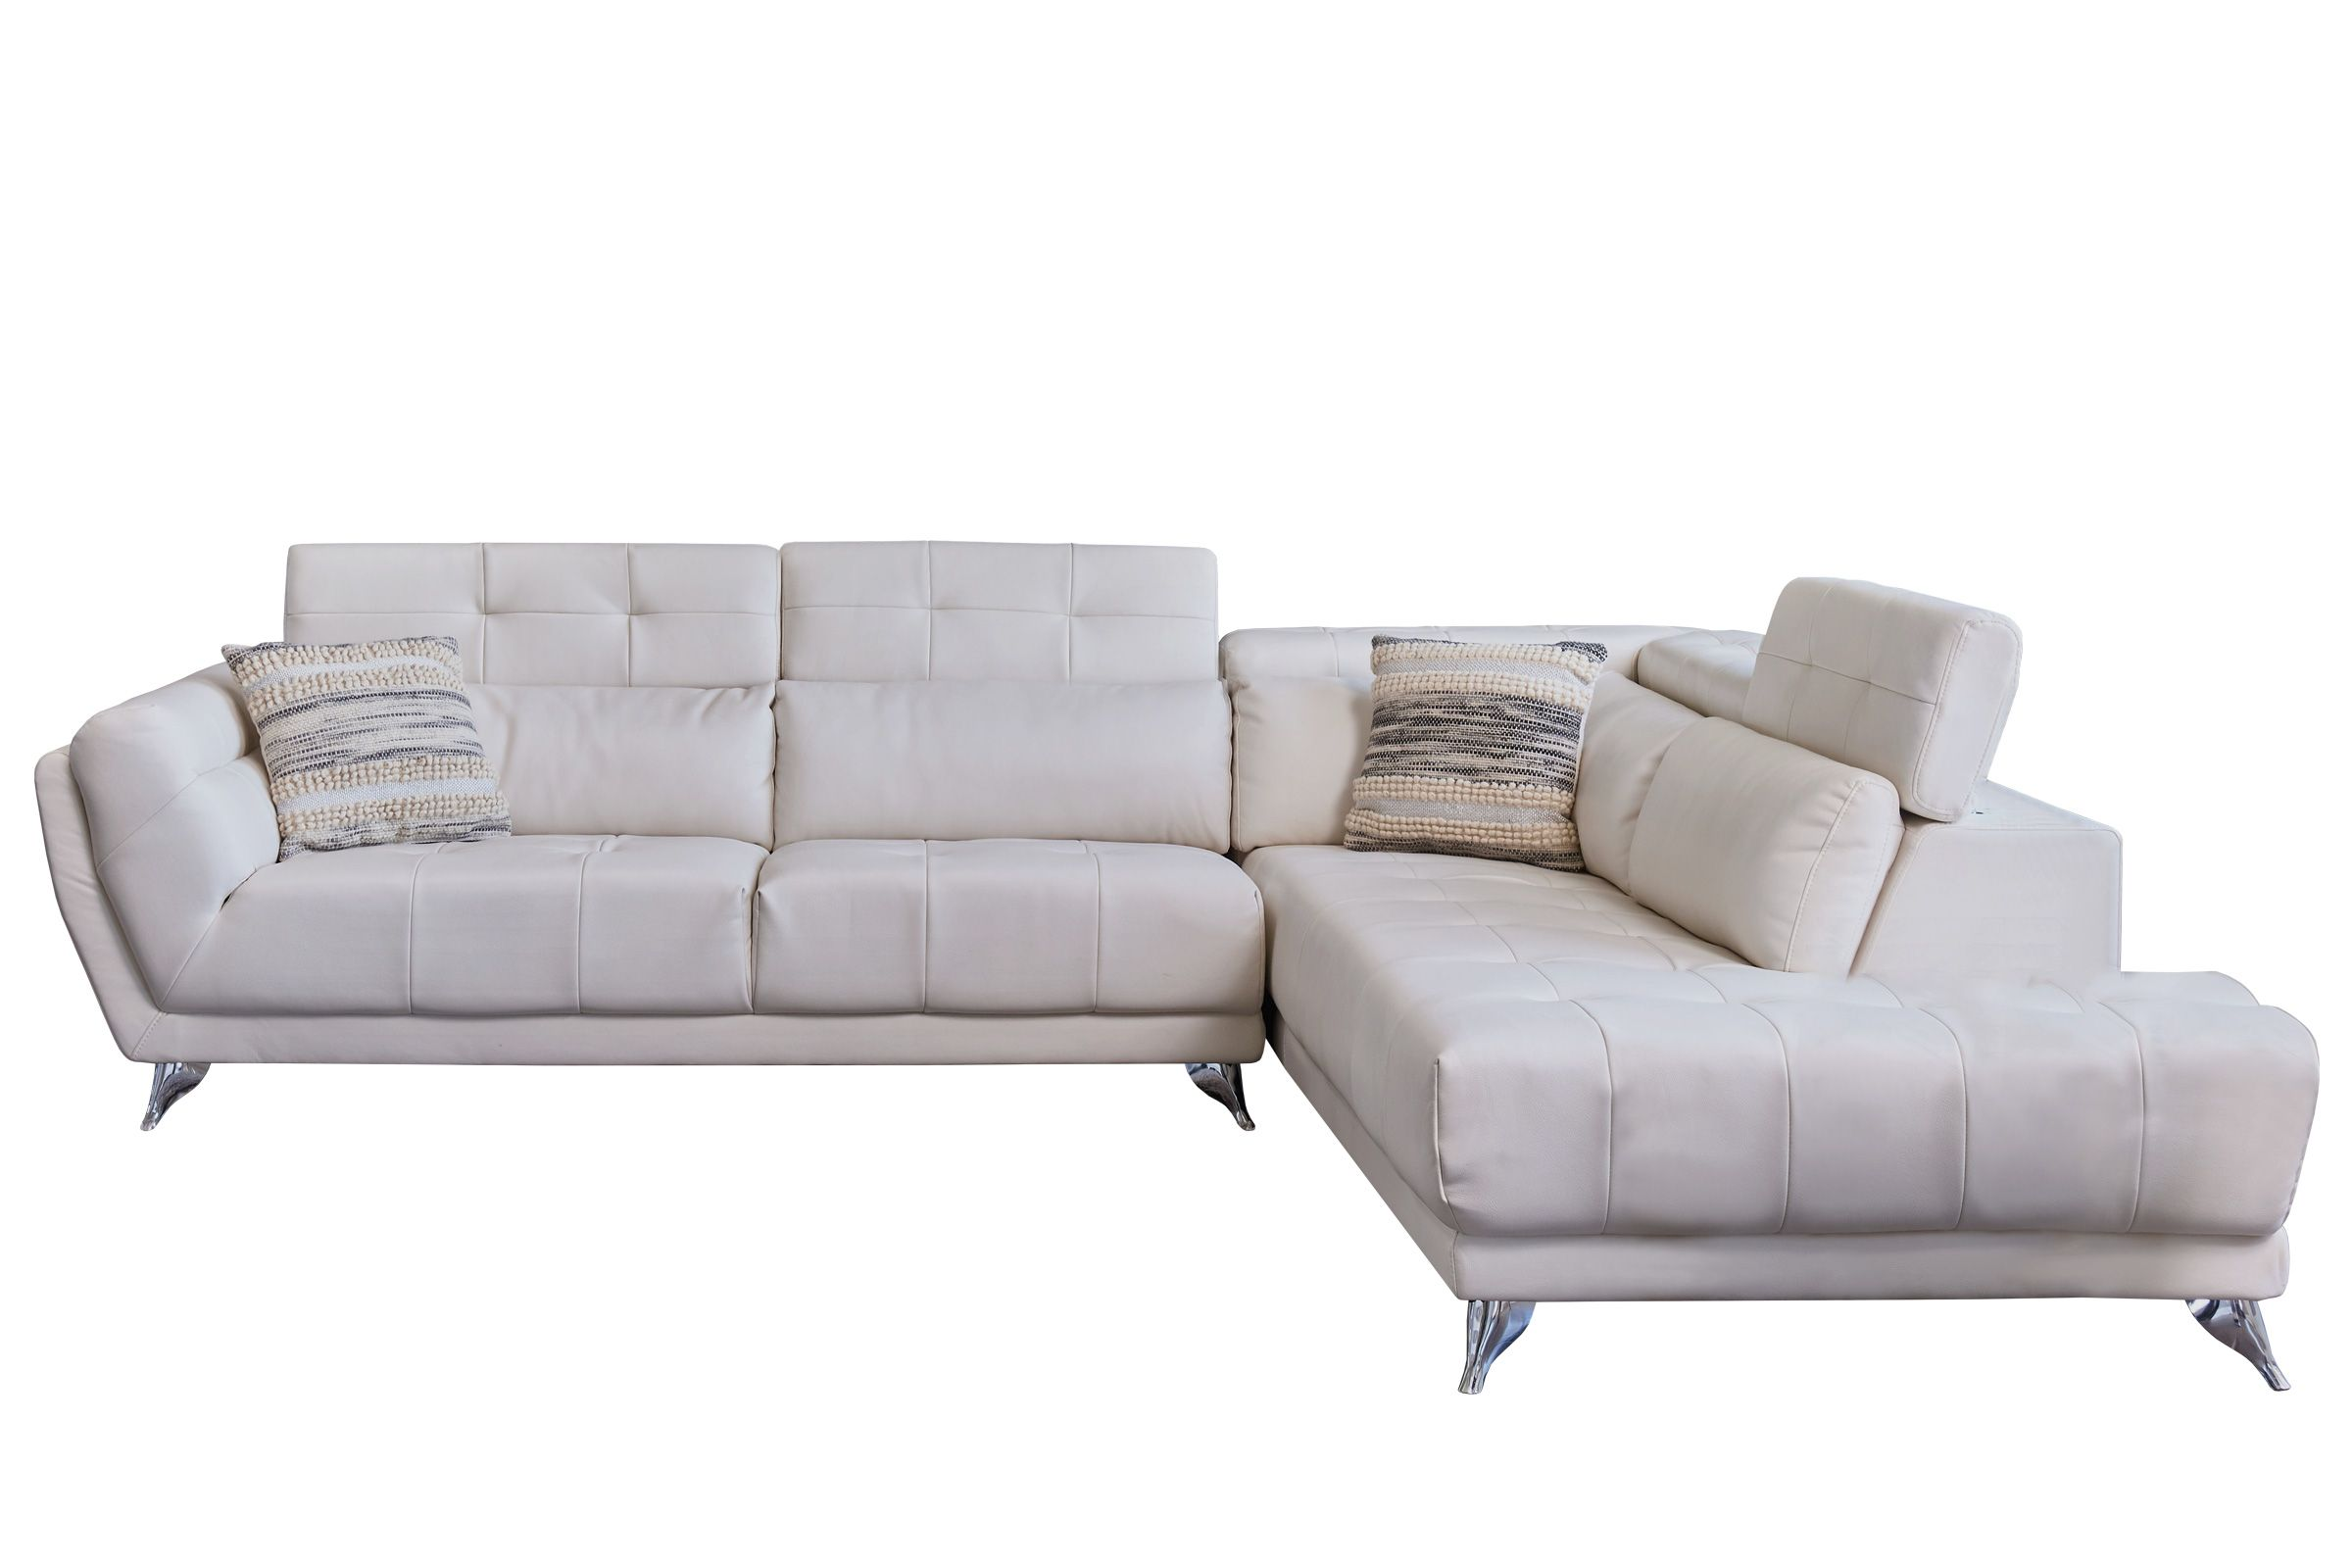 Desmond 2-Piece Sectional Now $1229.99 $983.99 + We Pay Your Tax  sc 1 st  Gardner-White : gardner white sectionals - Sectionals, Sofas & Couches